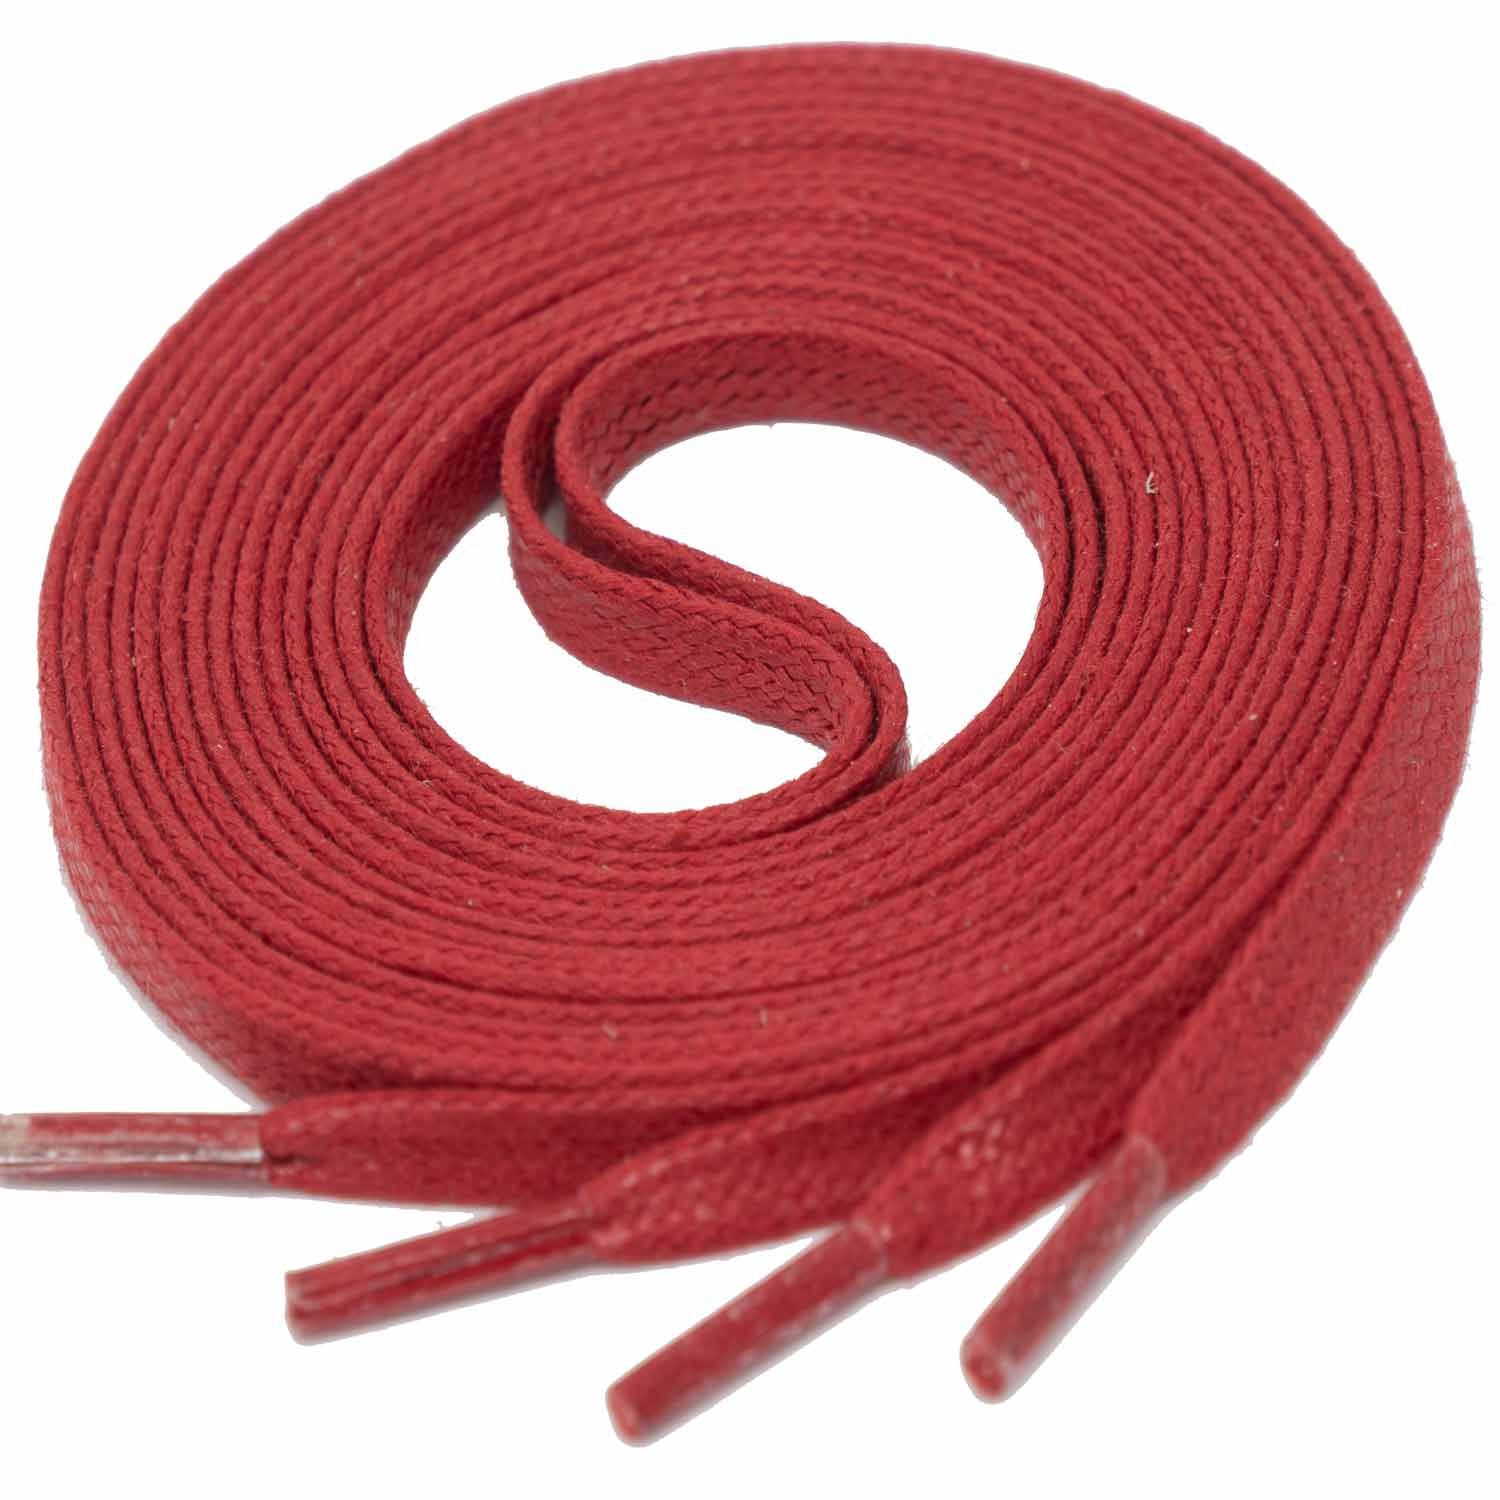 RED Flat Waxed Shoelaces width 4 mm